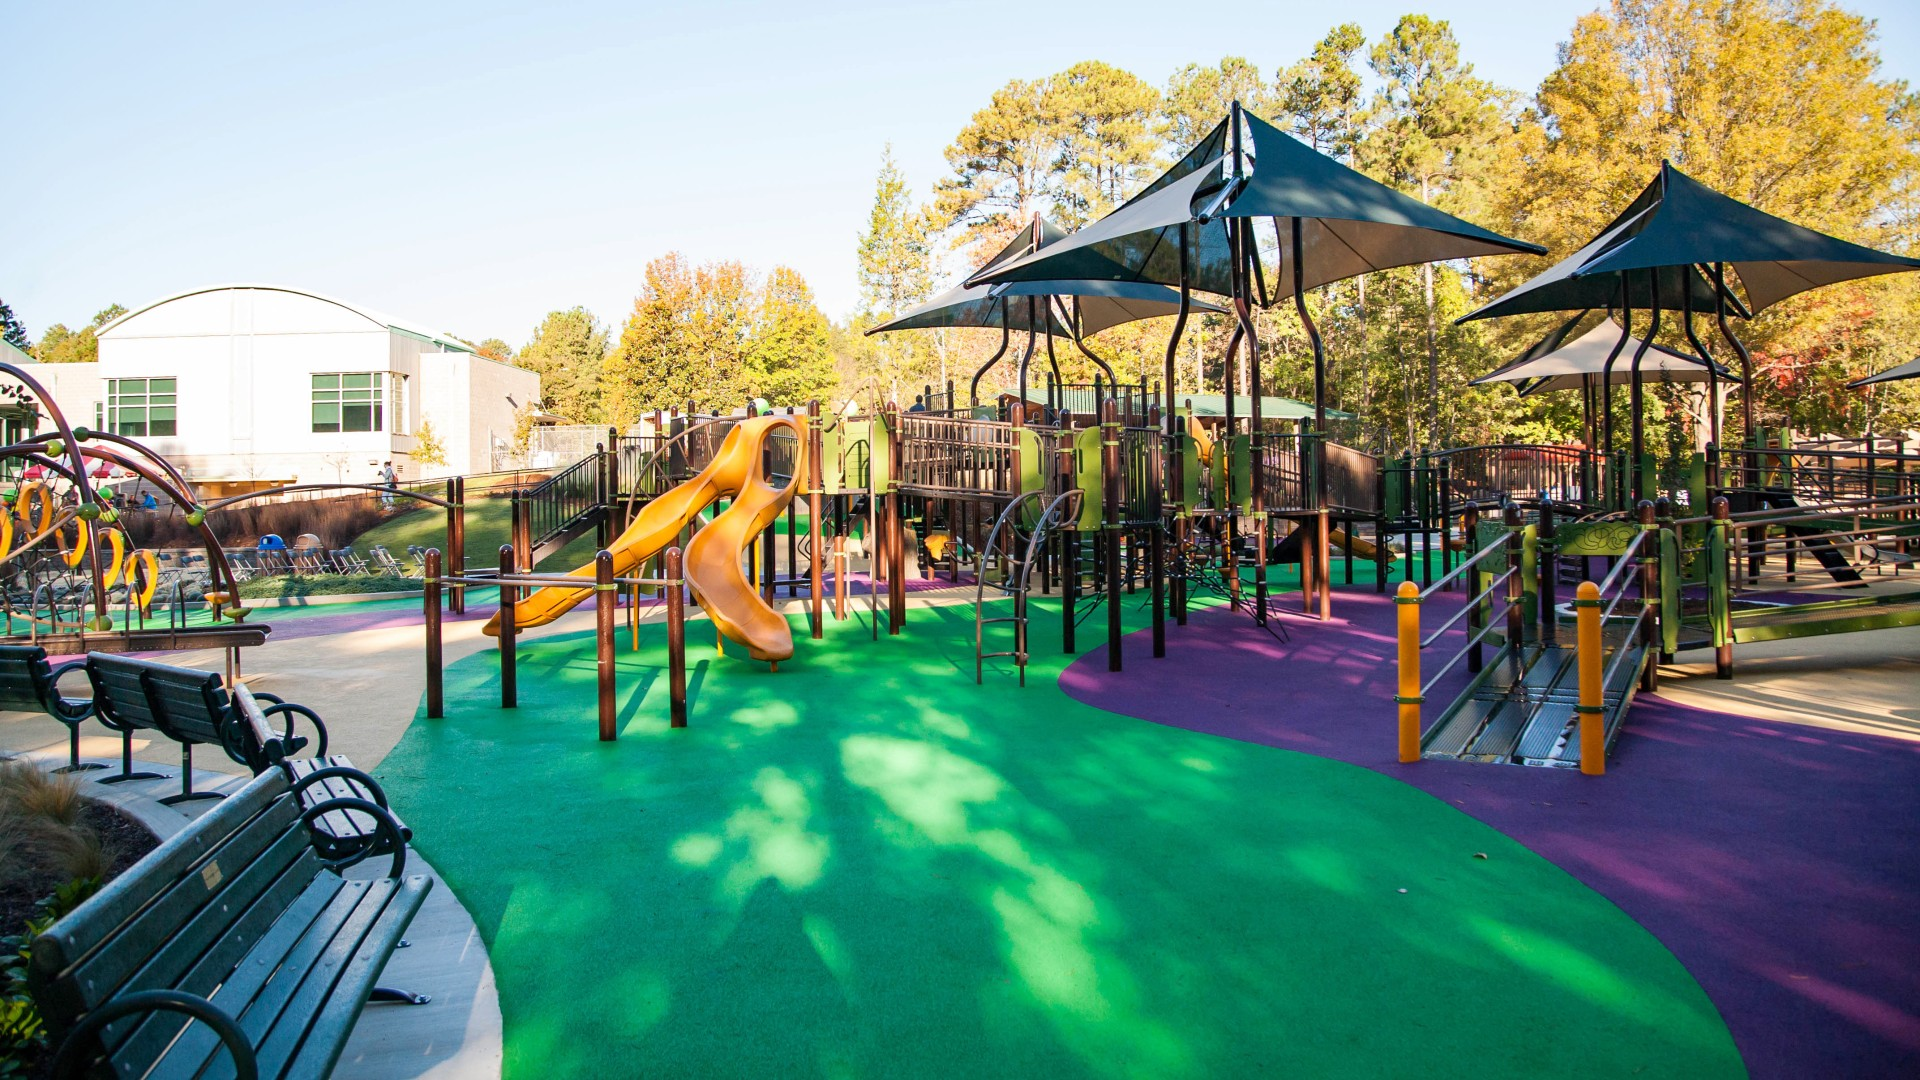 A large inclusive playground